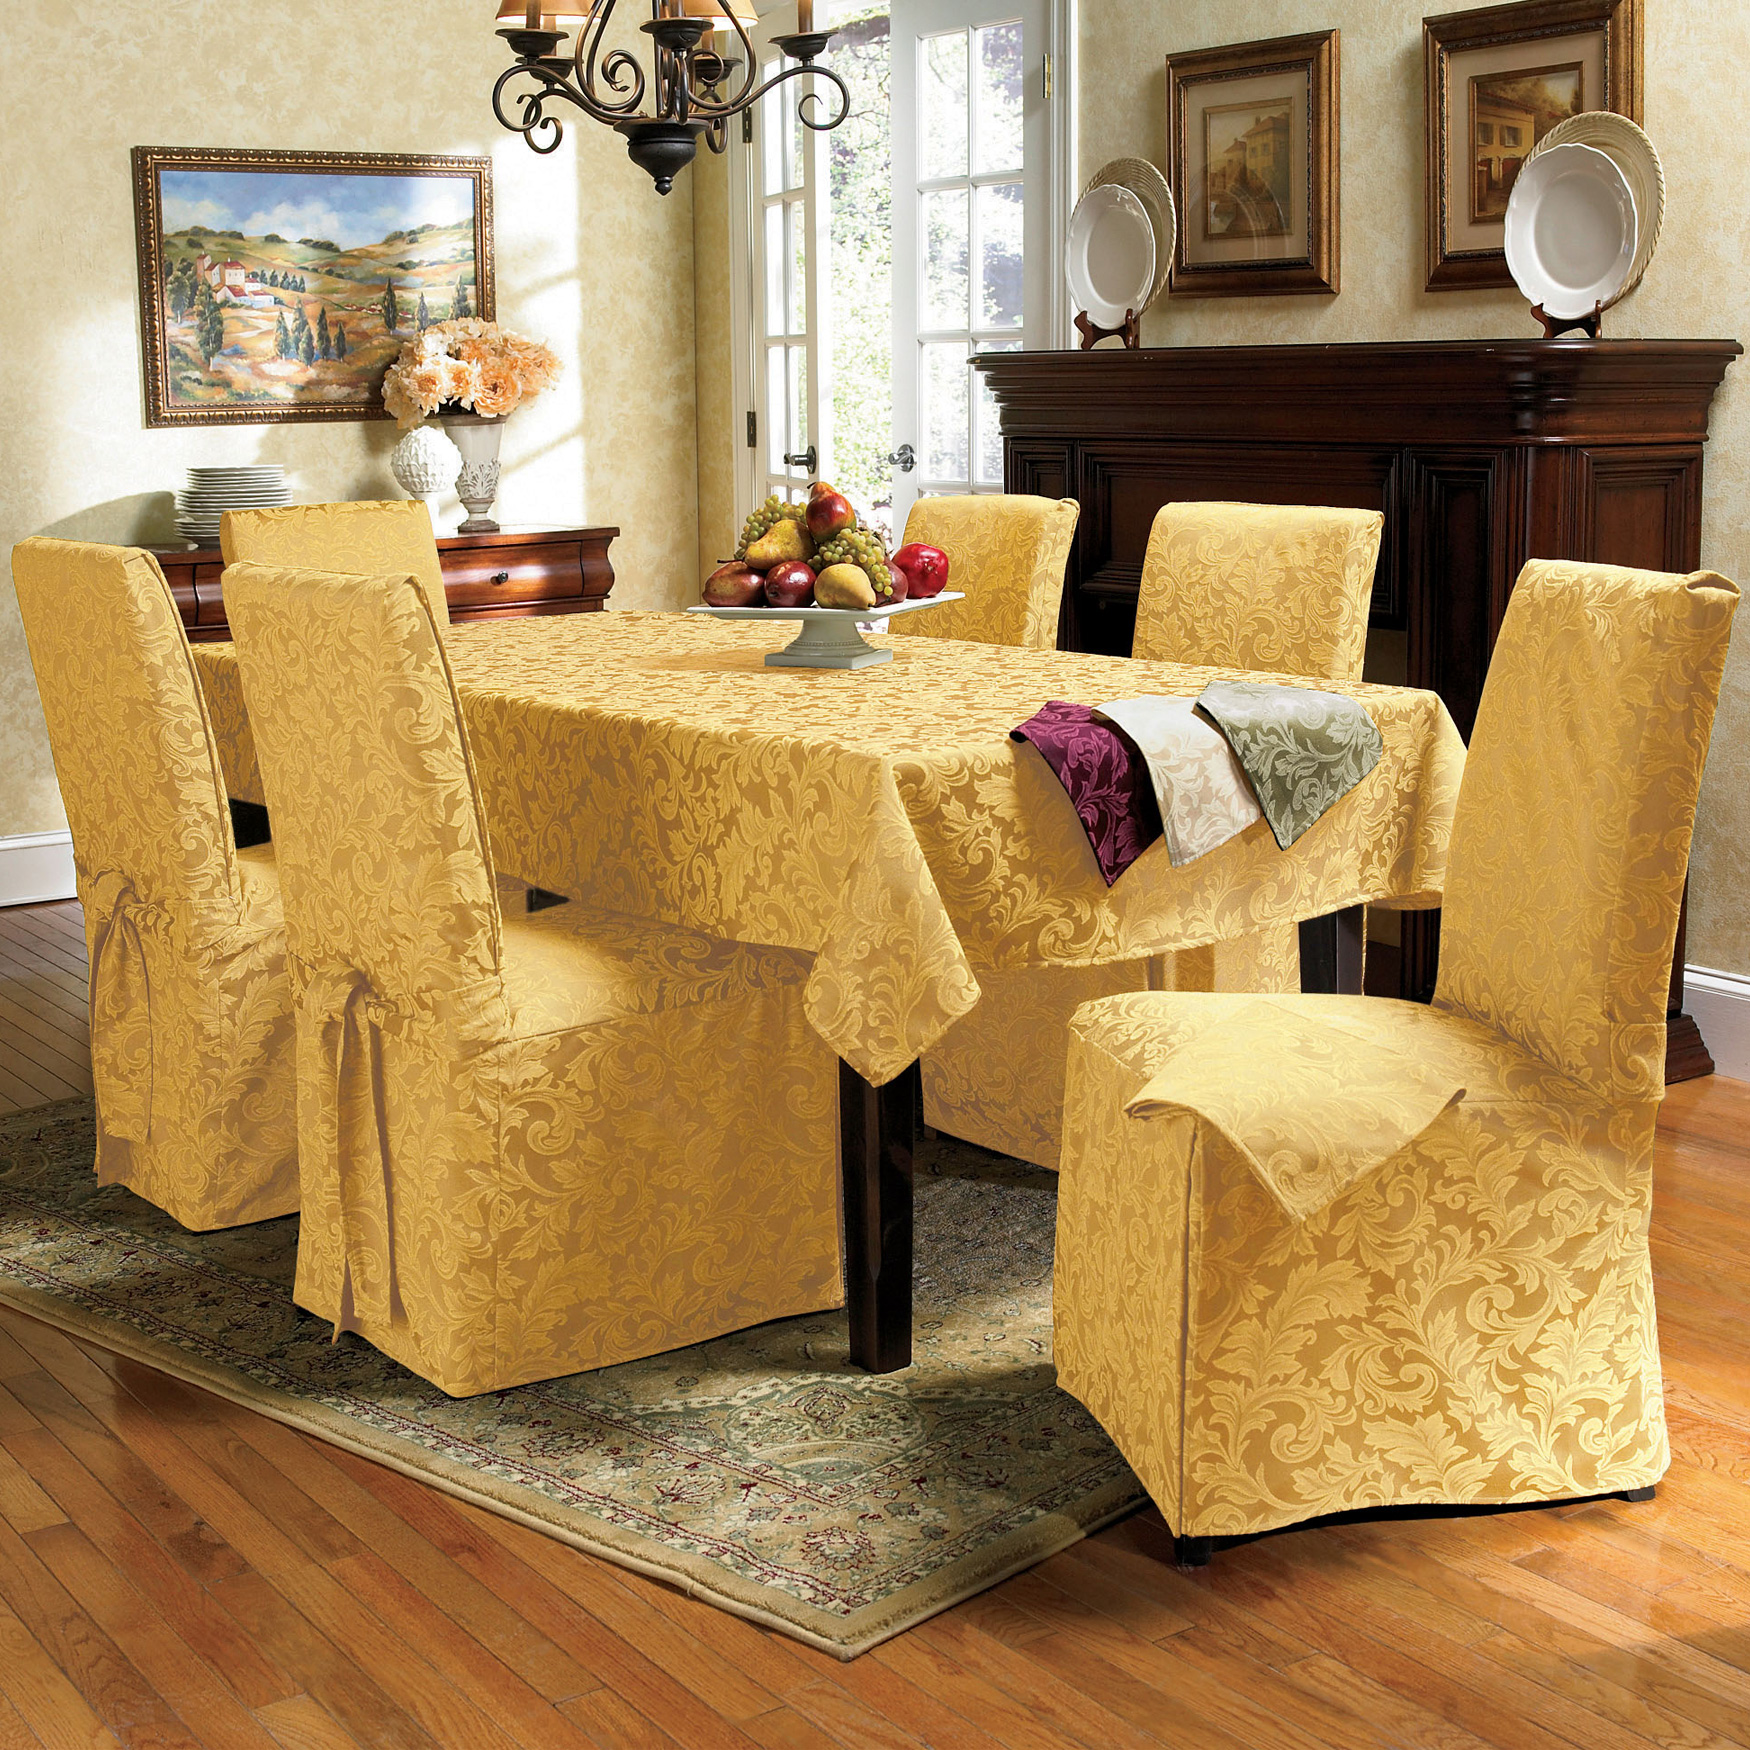 17-Pc. Damask Table Linen Set,